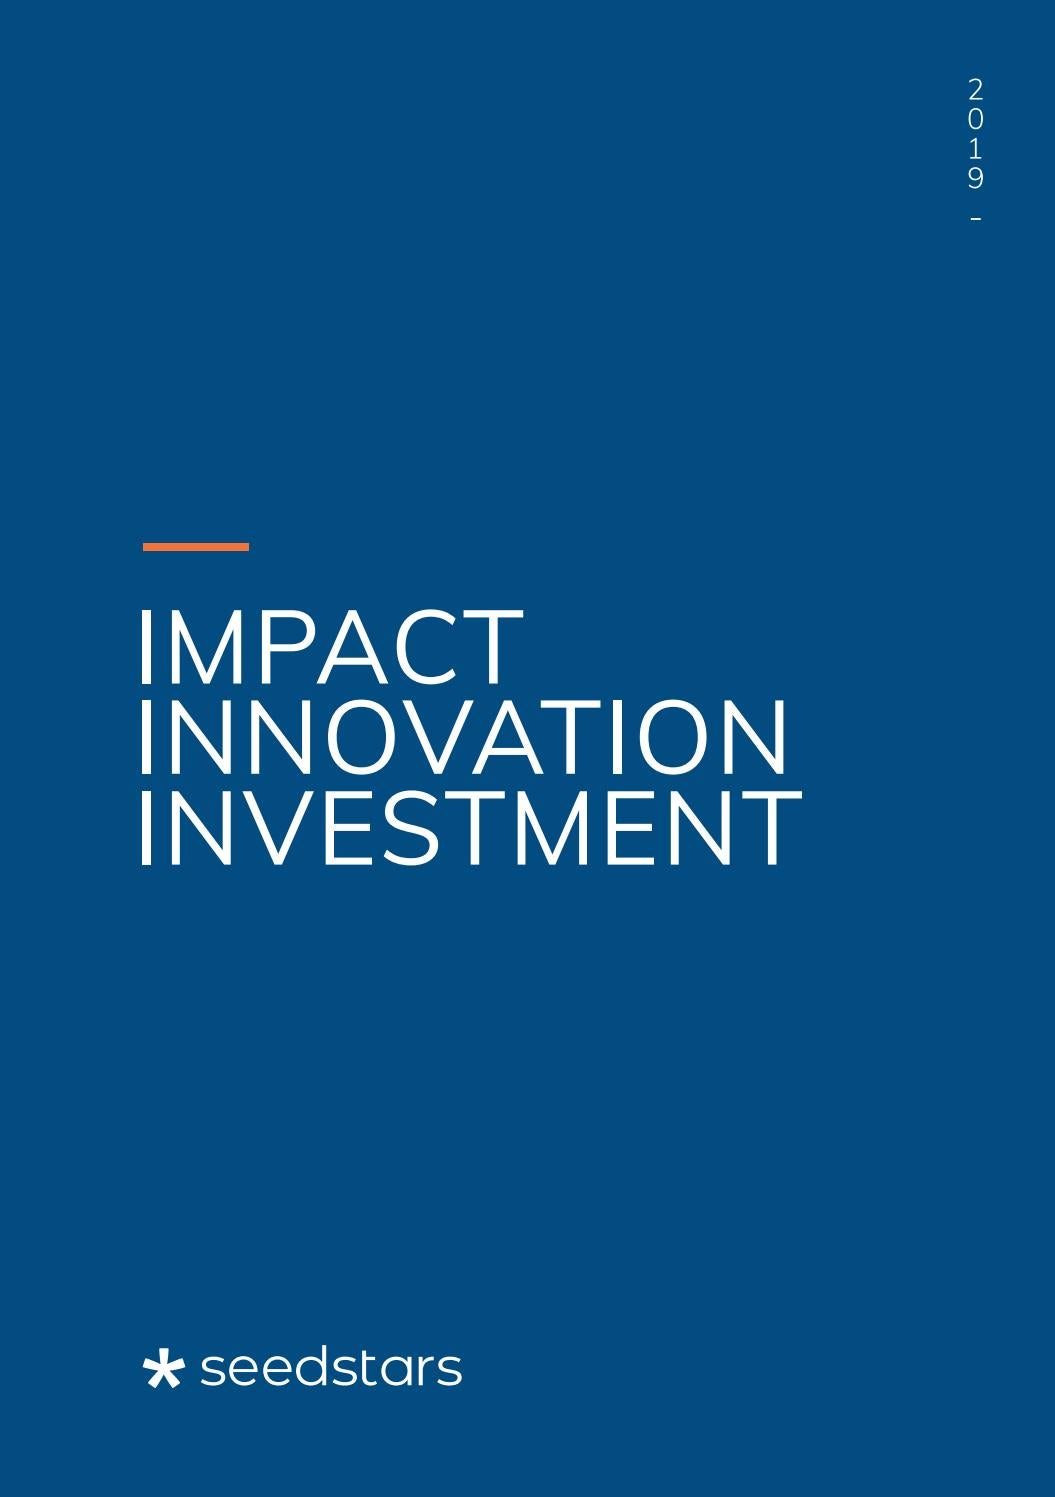 Impact  Innovation  Investment: The Seedstars Report 2019 on